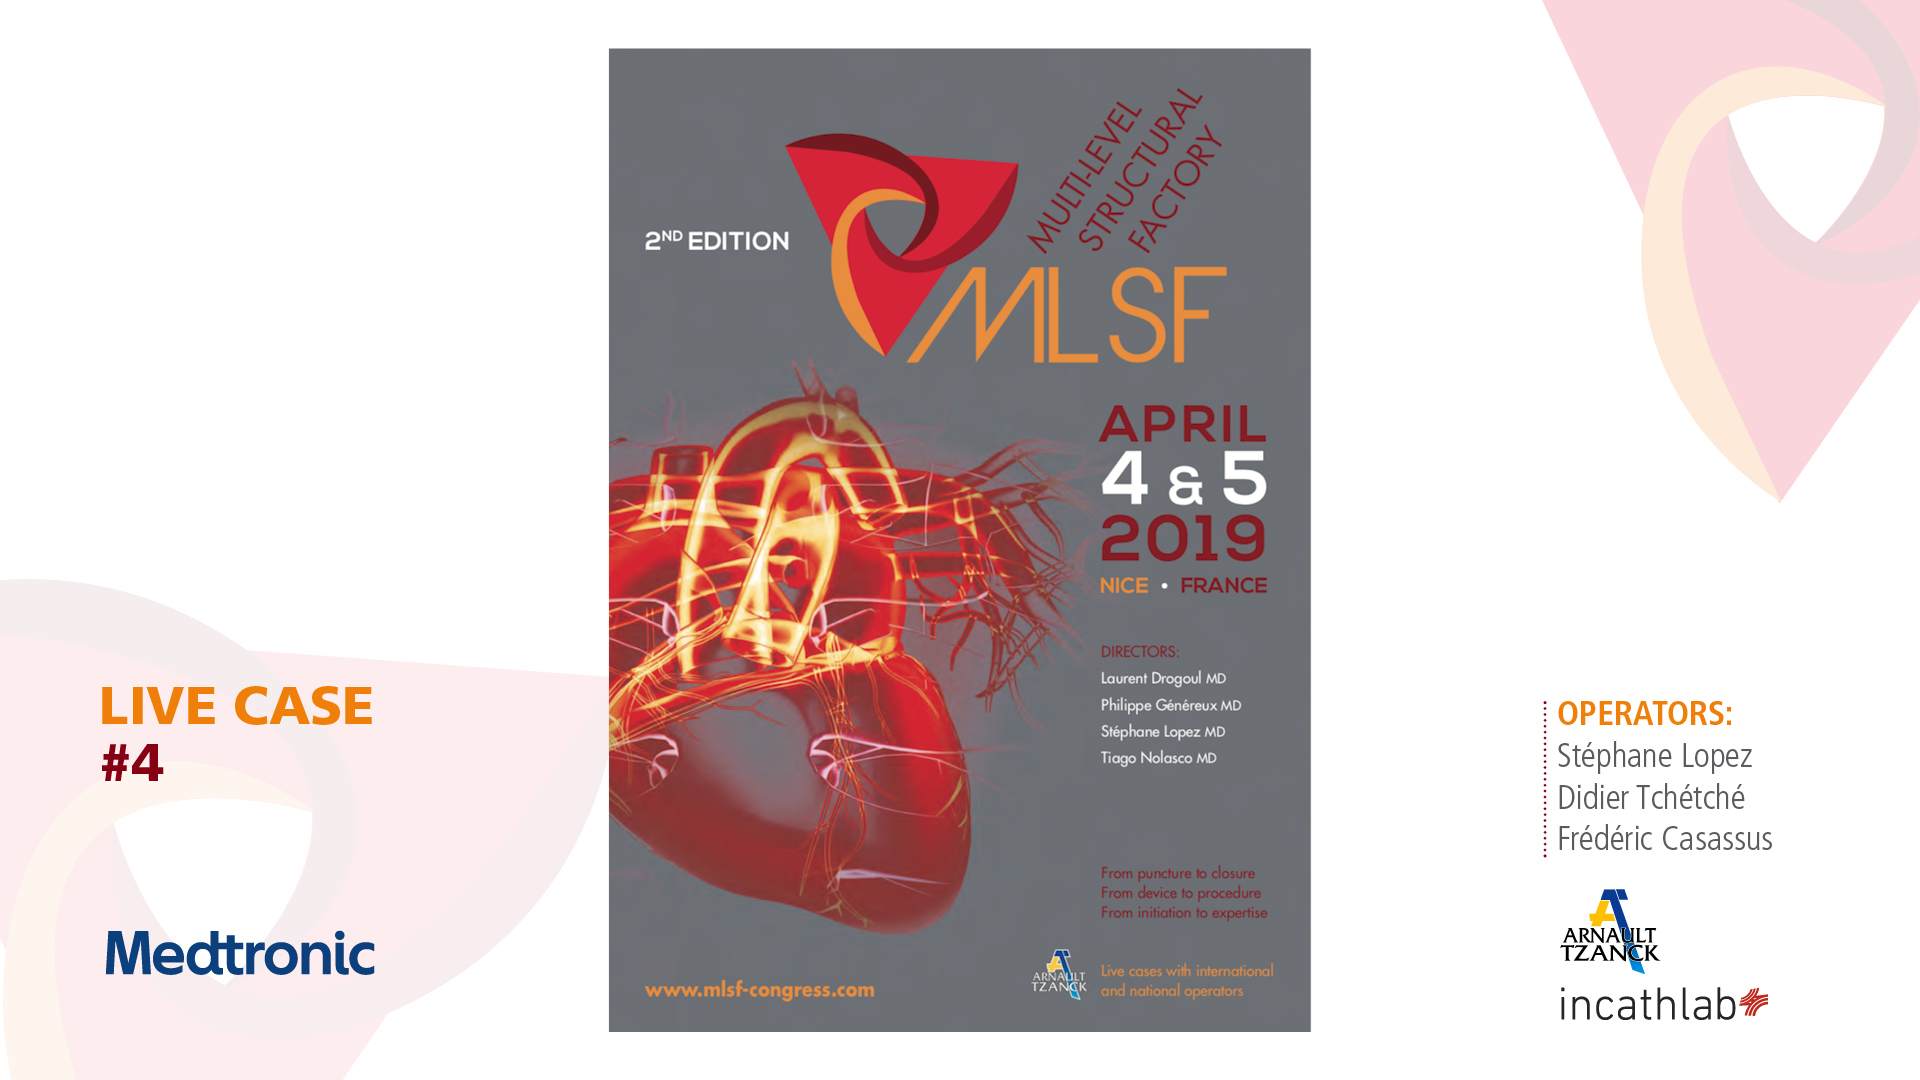 MLSF 2019: Live Case 4 - Complex TAVI - access and implantation